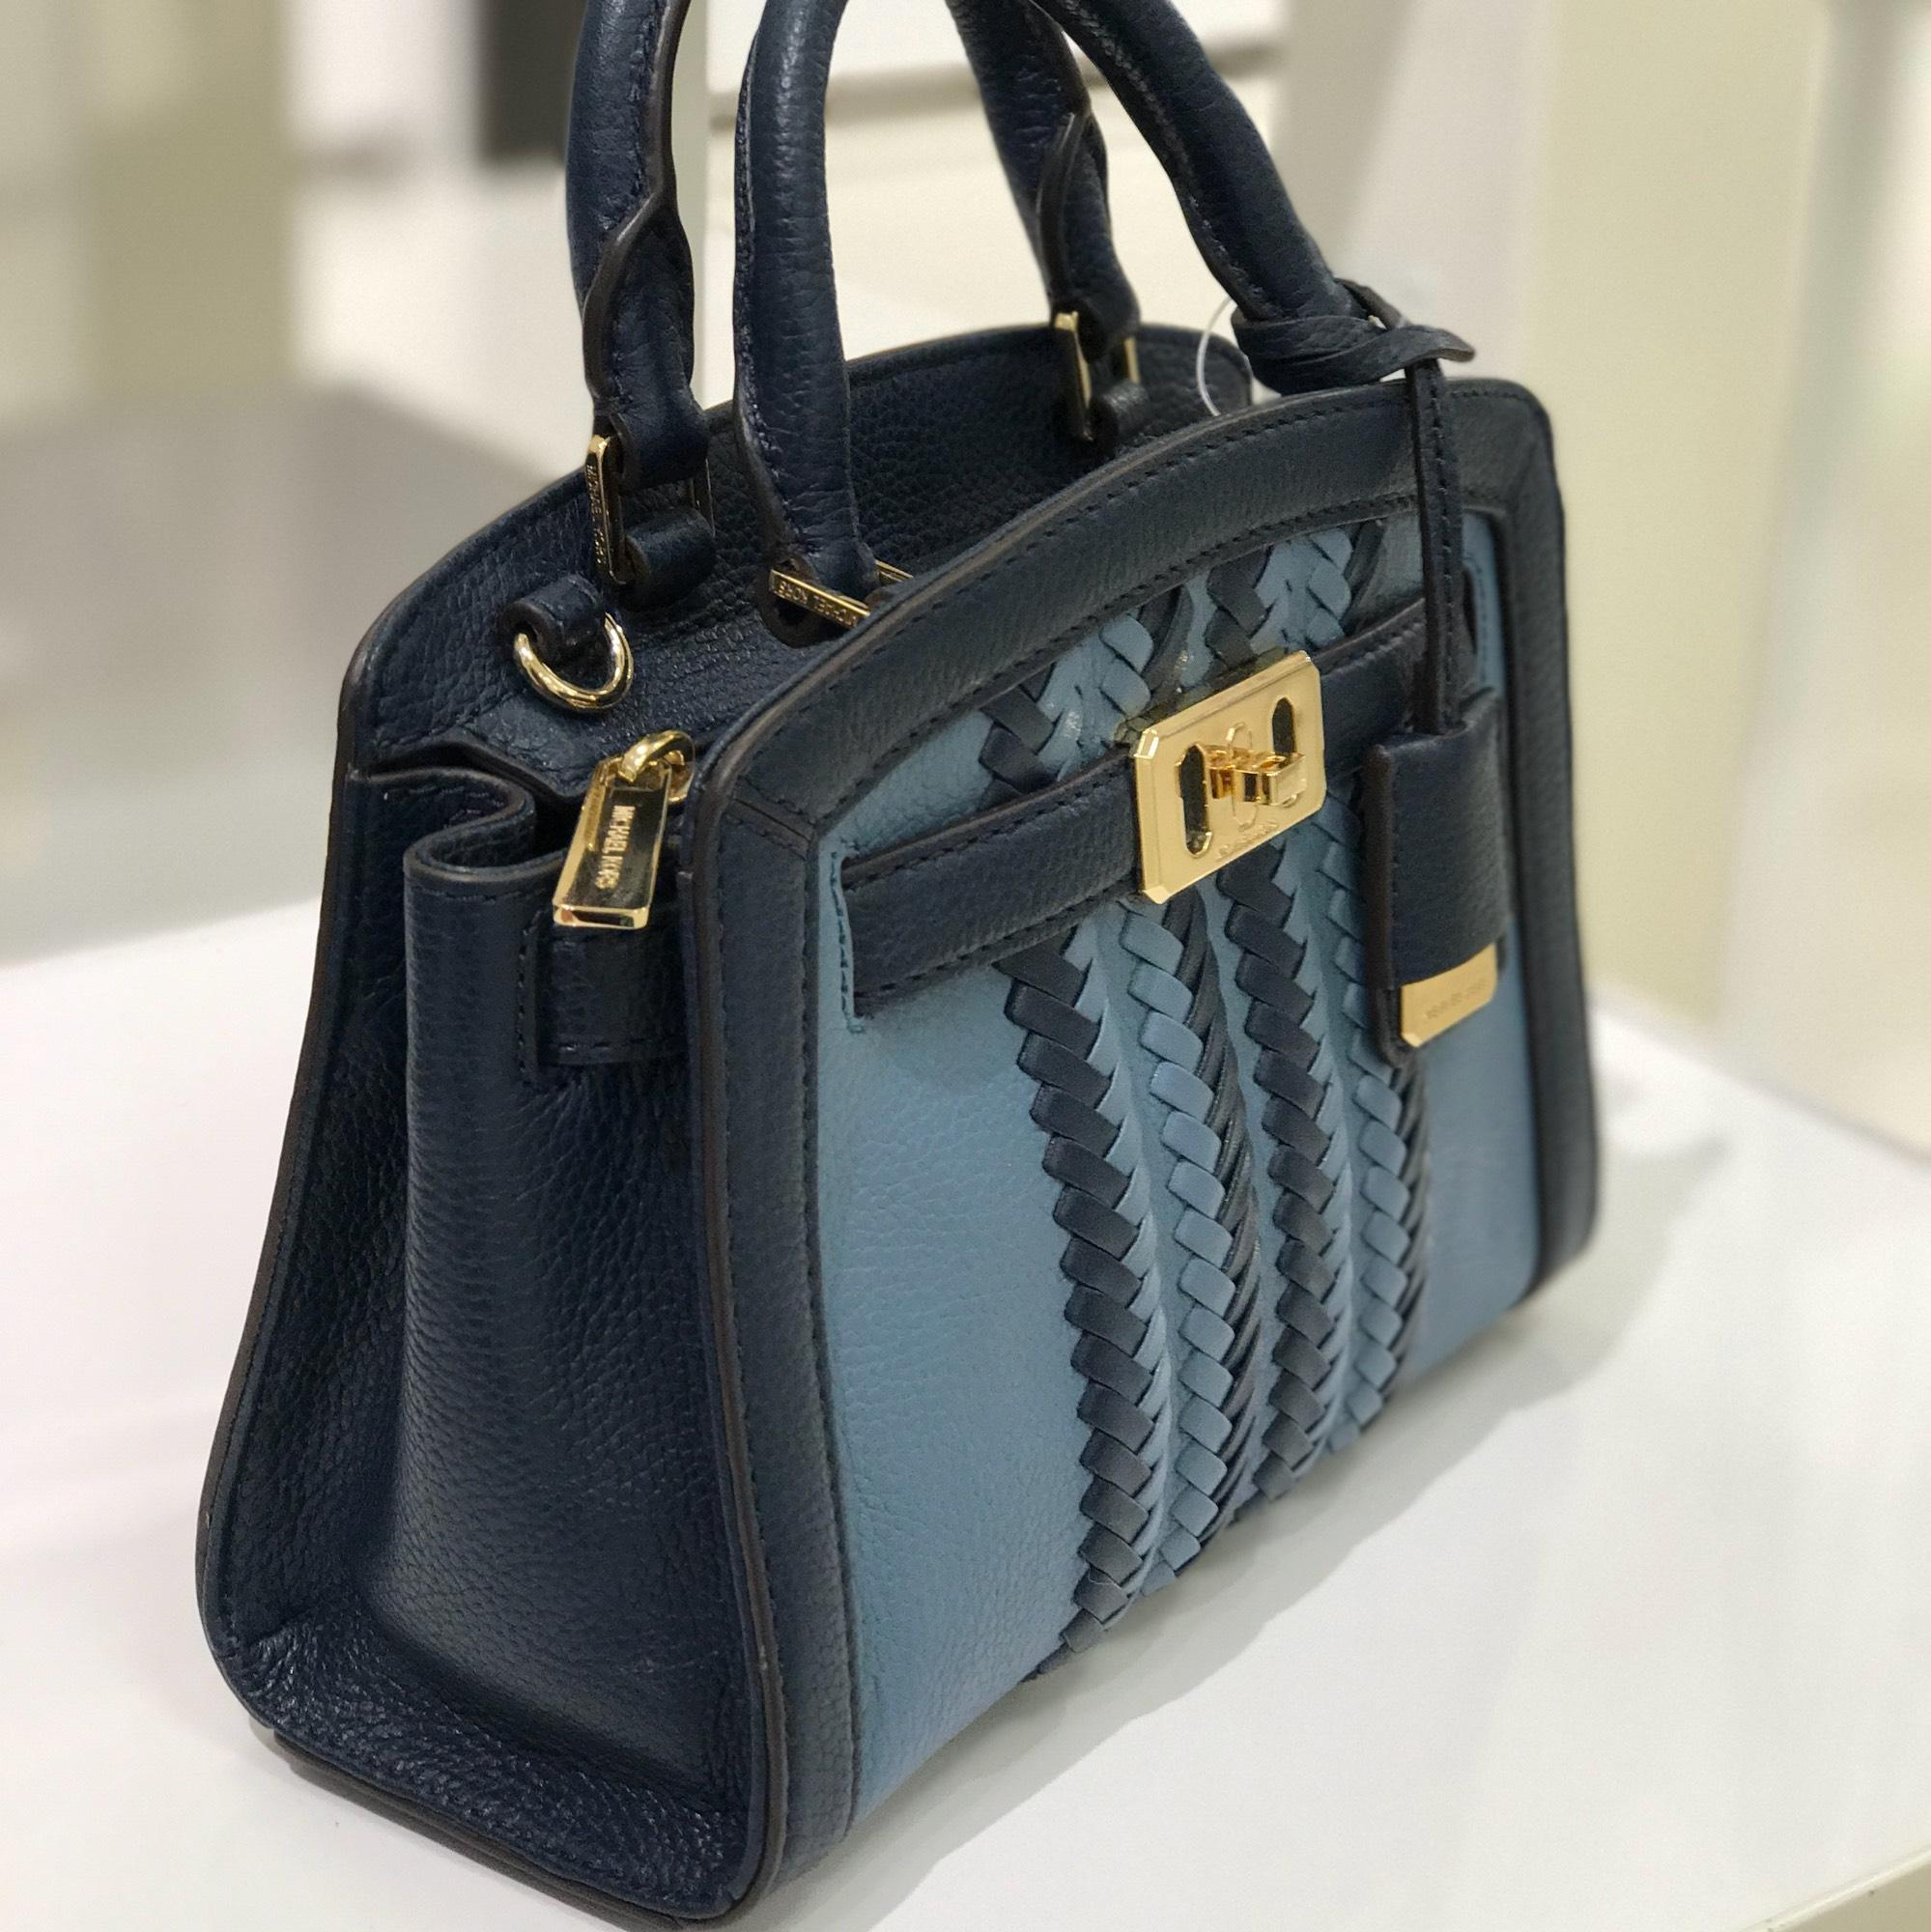 252da089e50f9b ... promo code for michael kors karson mini satchel denim navy leather  cross body bag tradesy 2d4f2